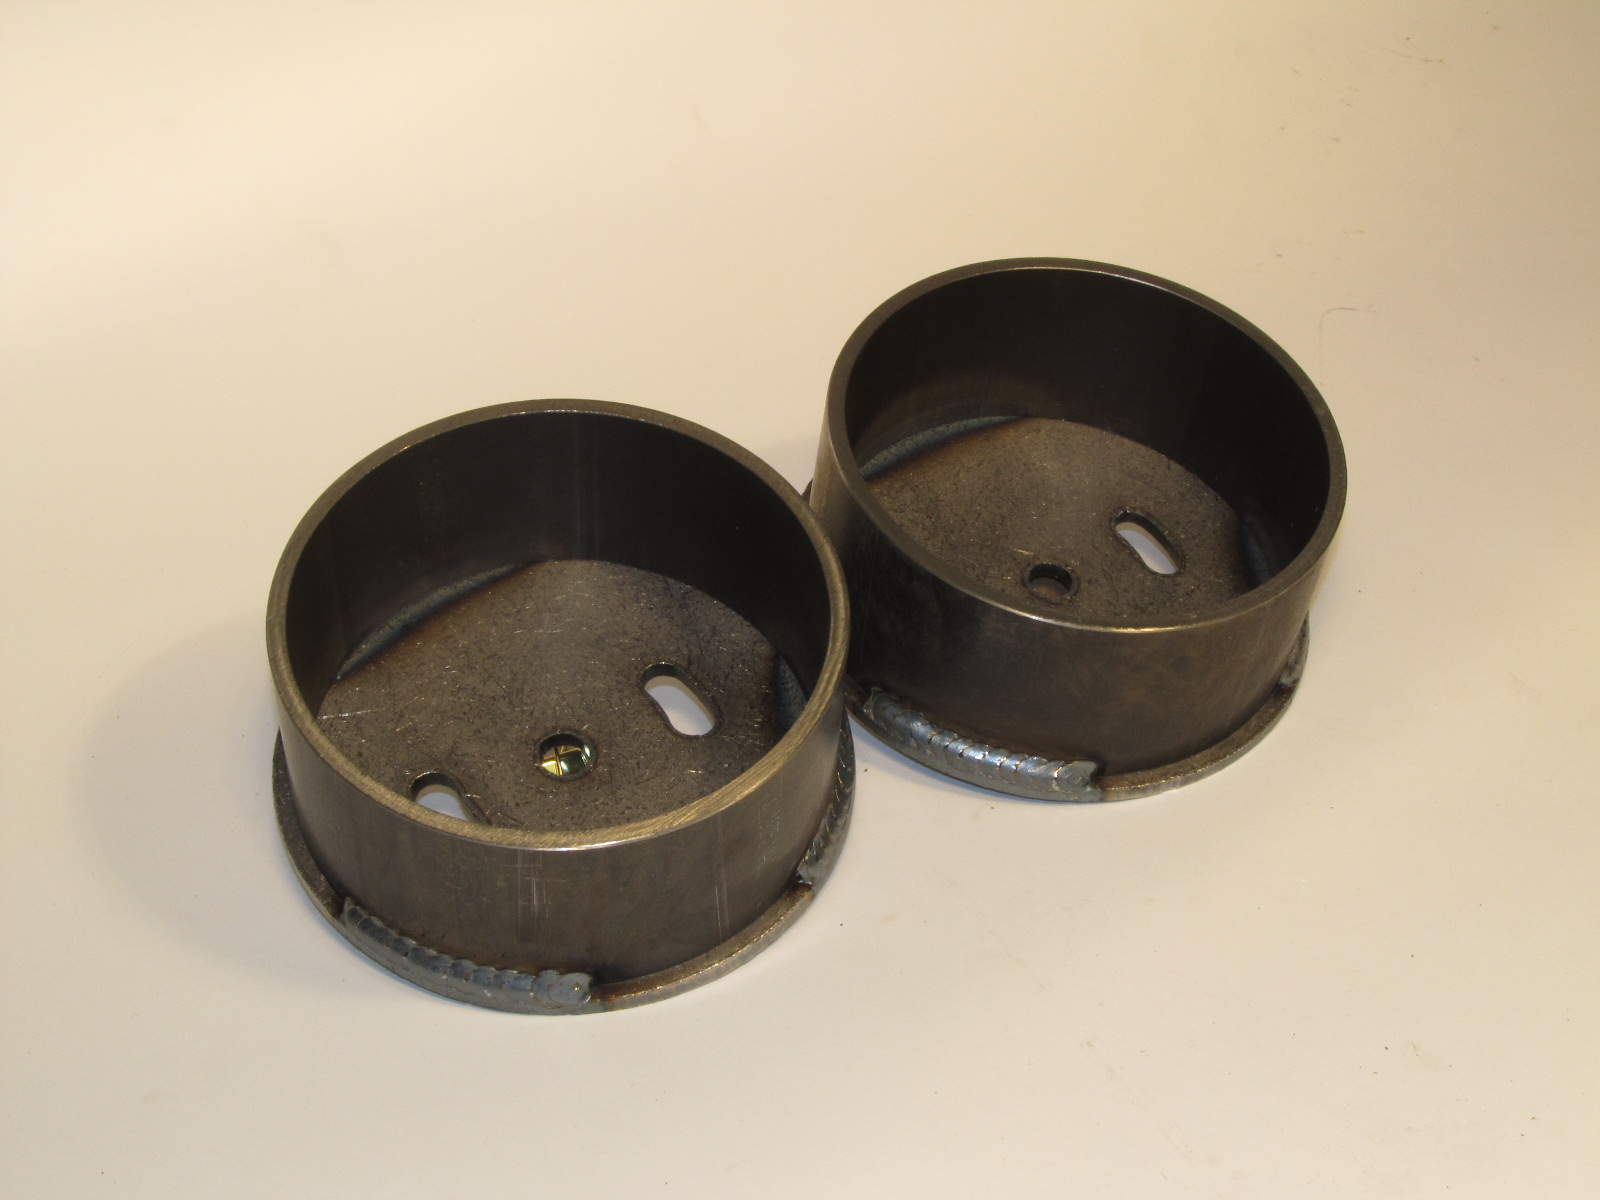 LRD-Full Size Chevy Cups 88-98 *******LOWER CUPS ONLY********